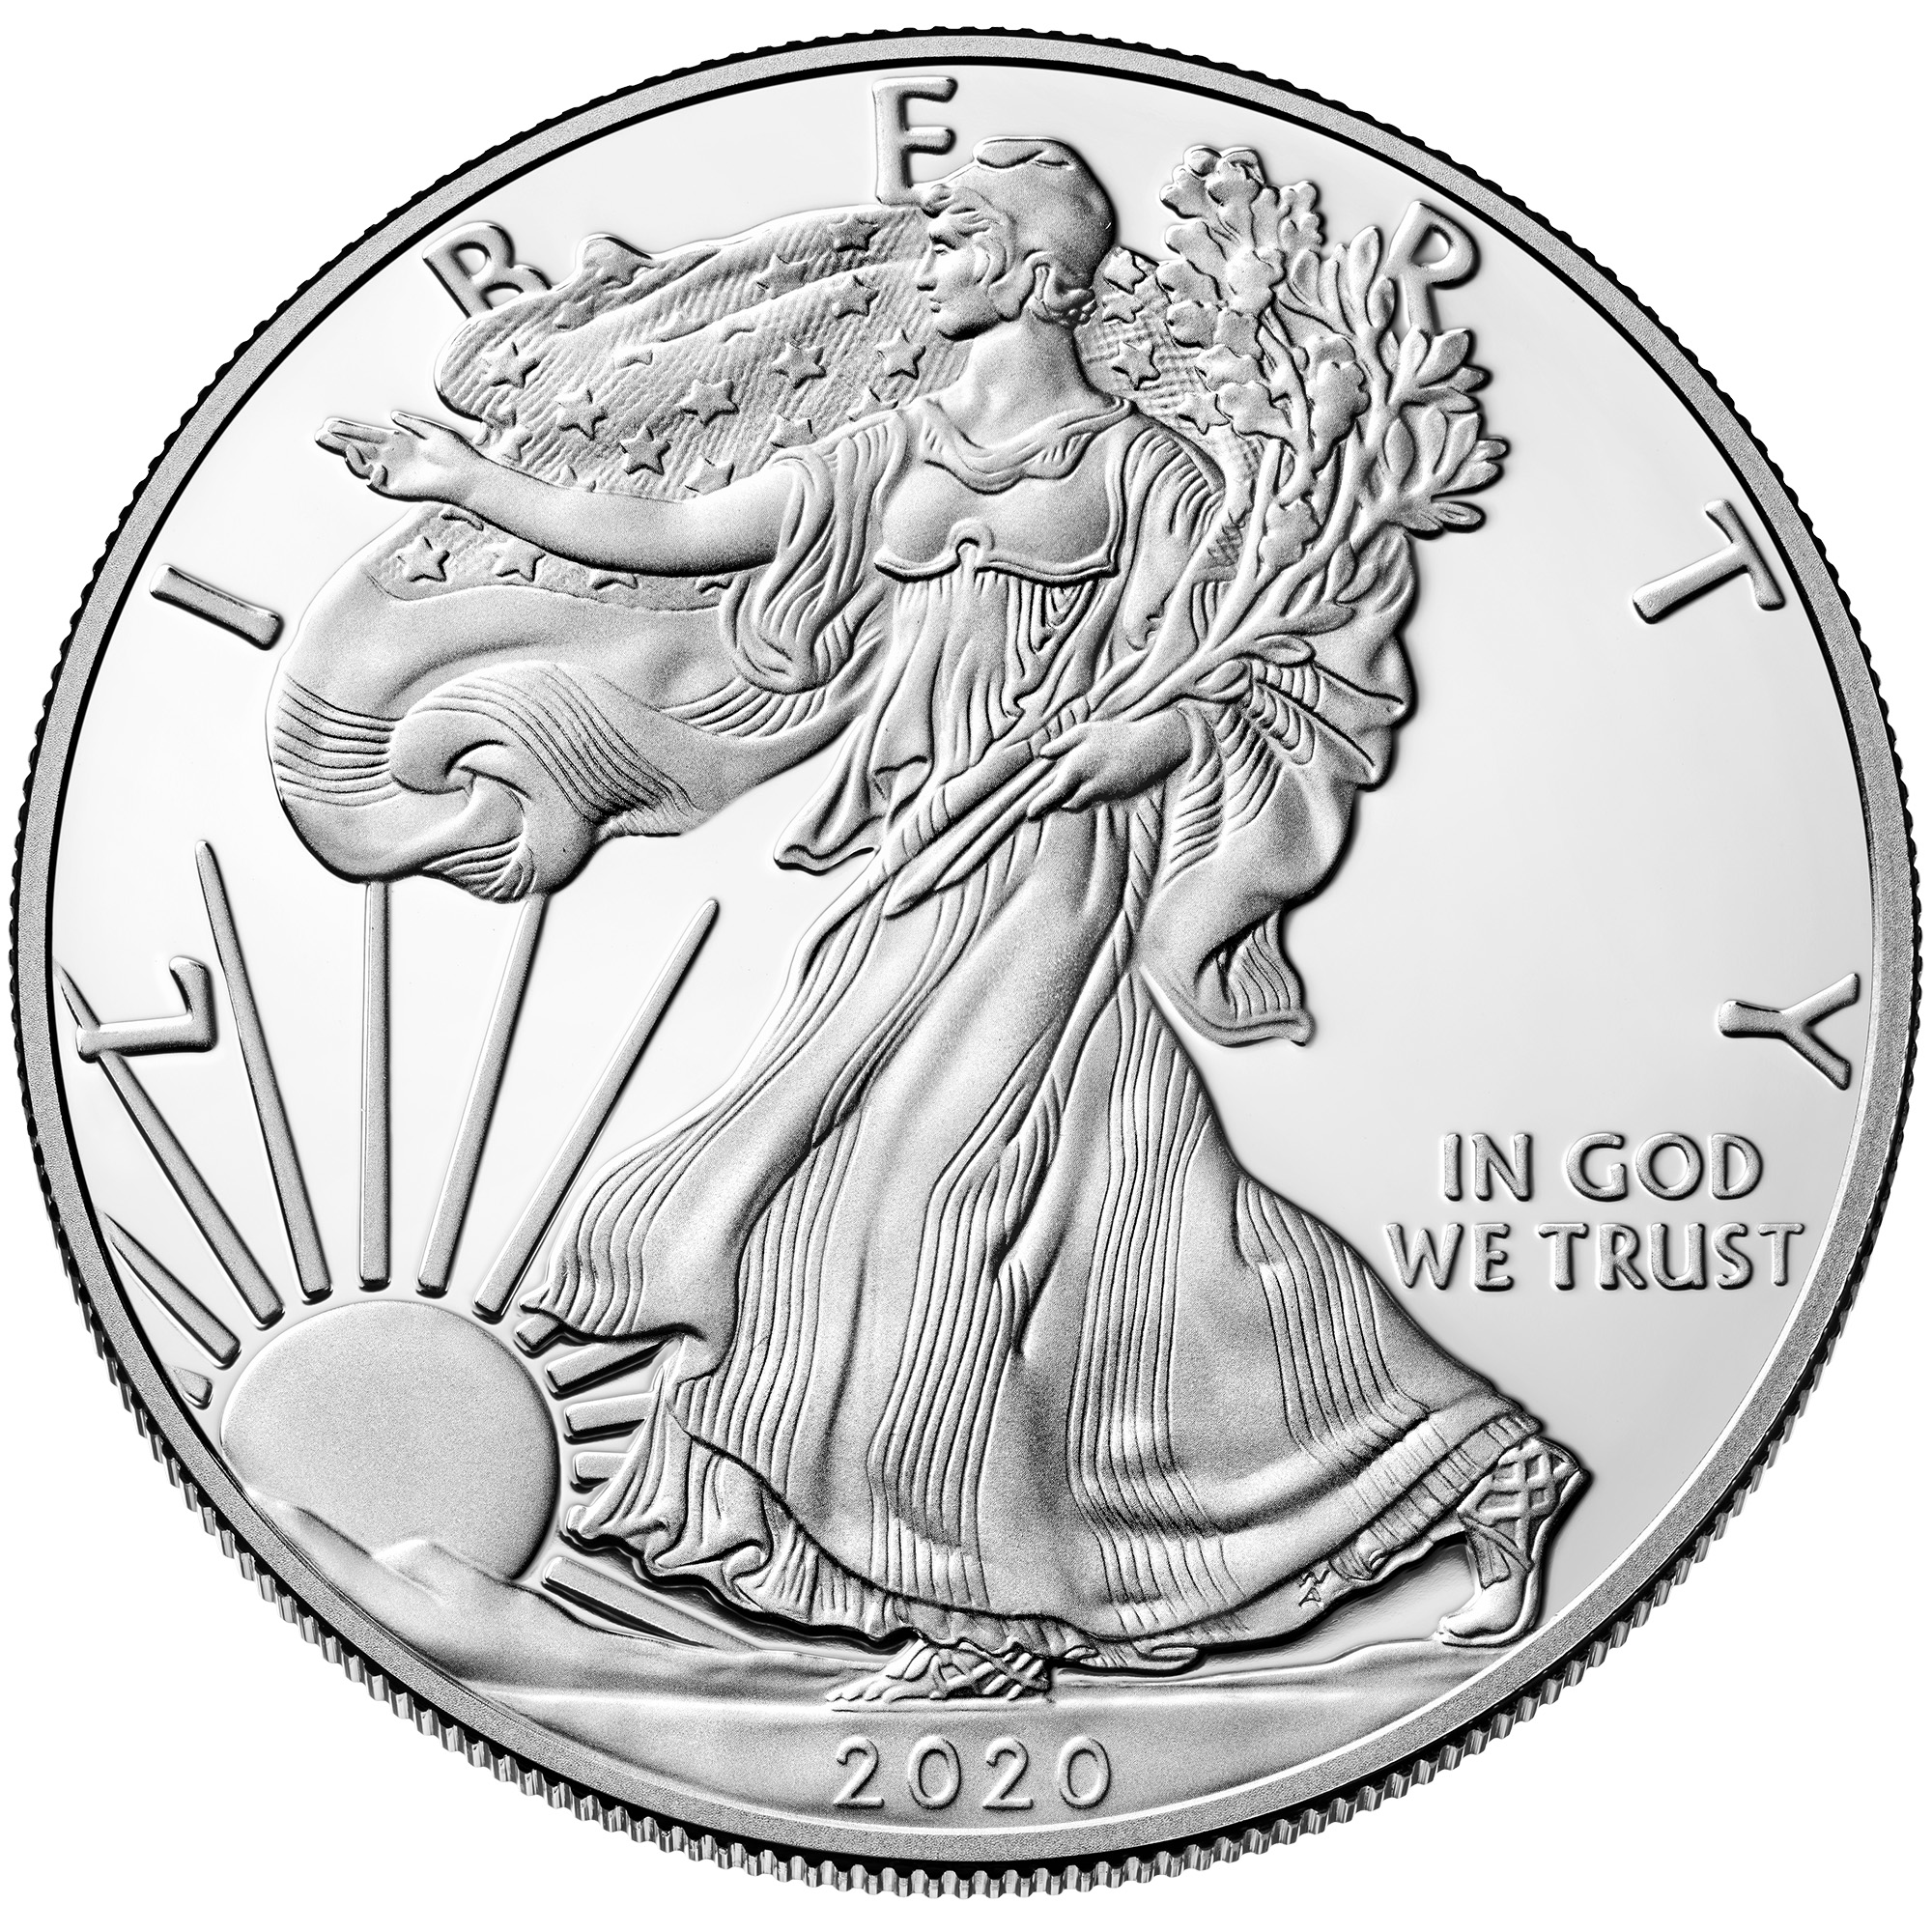 2020 American Eagle Silver One Ounce Proof Coin Obverse